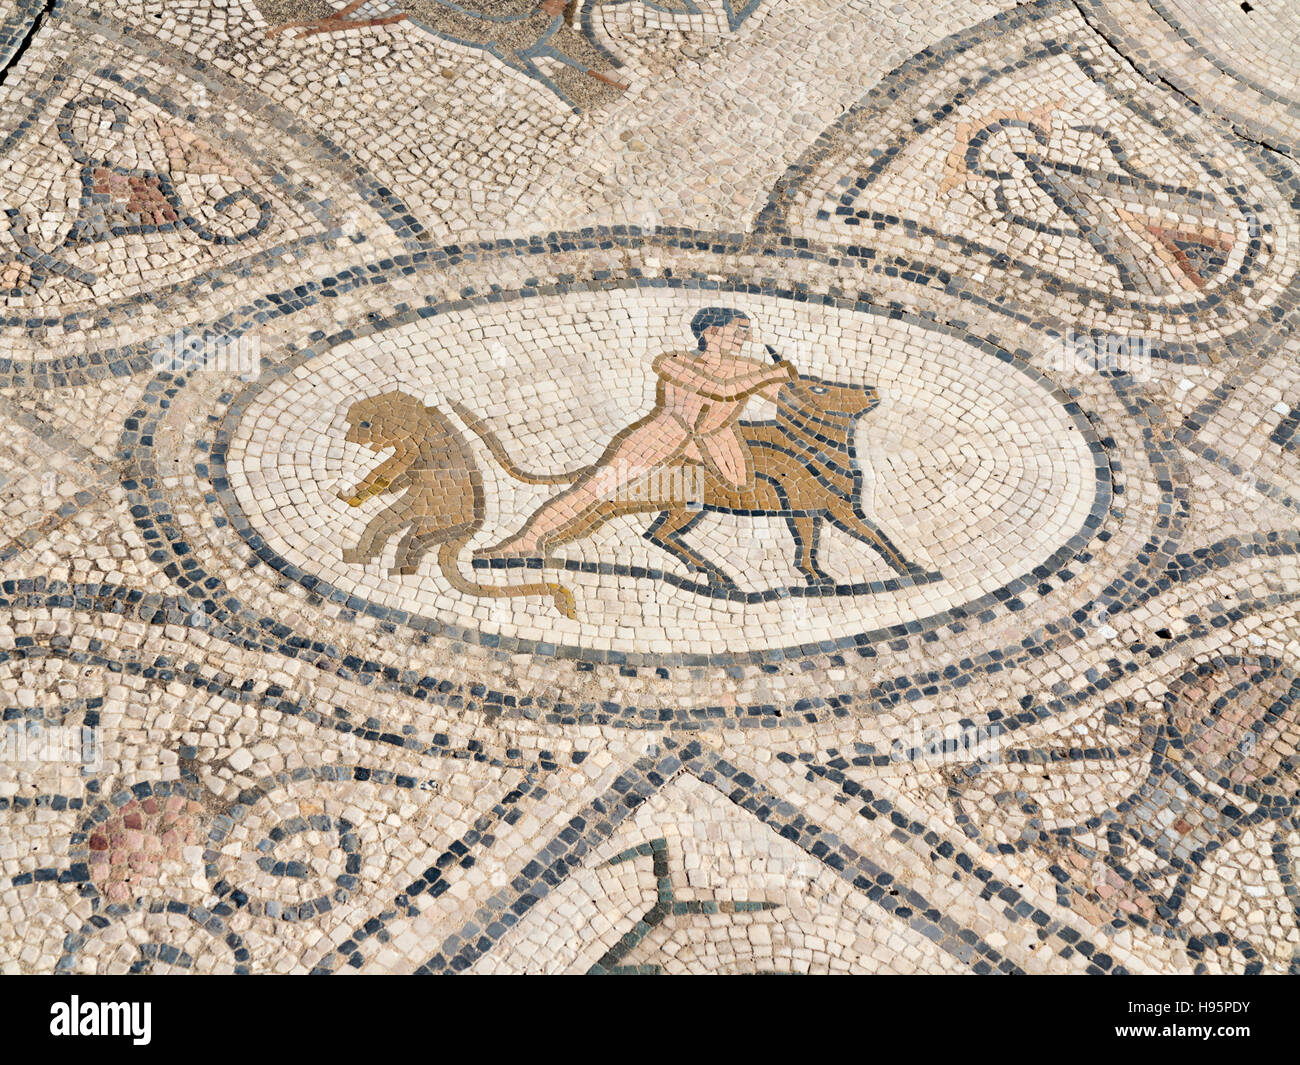 Mosaic details in the ancient town of Volubilis in the Zerhoun Massif area of Morocco - Stock Image